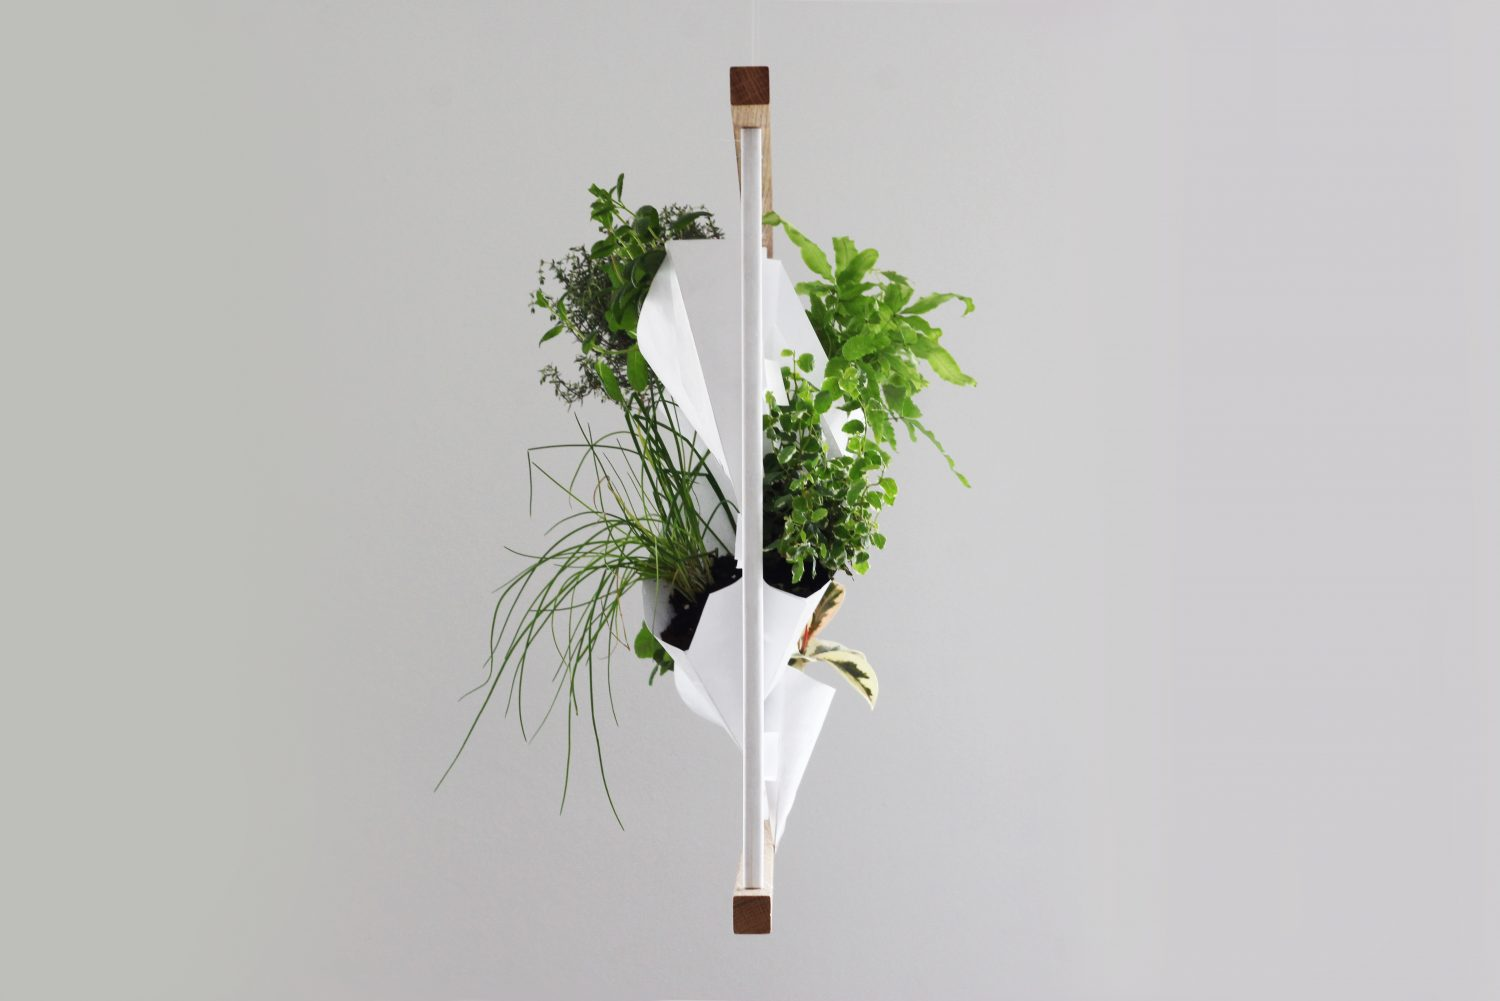 greenwall franck grossel tyvek design product